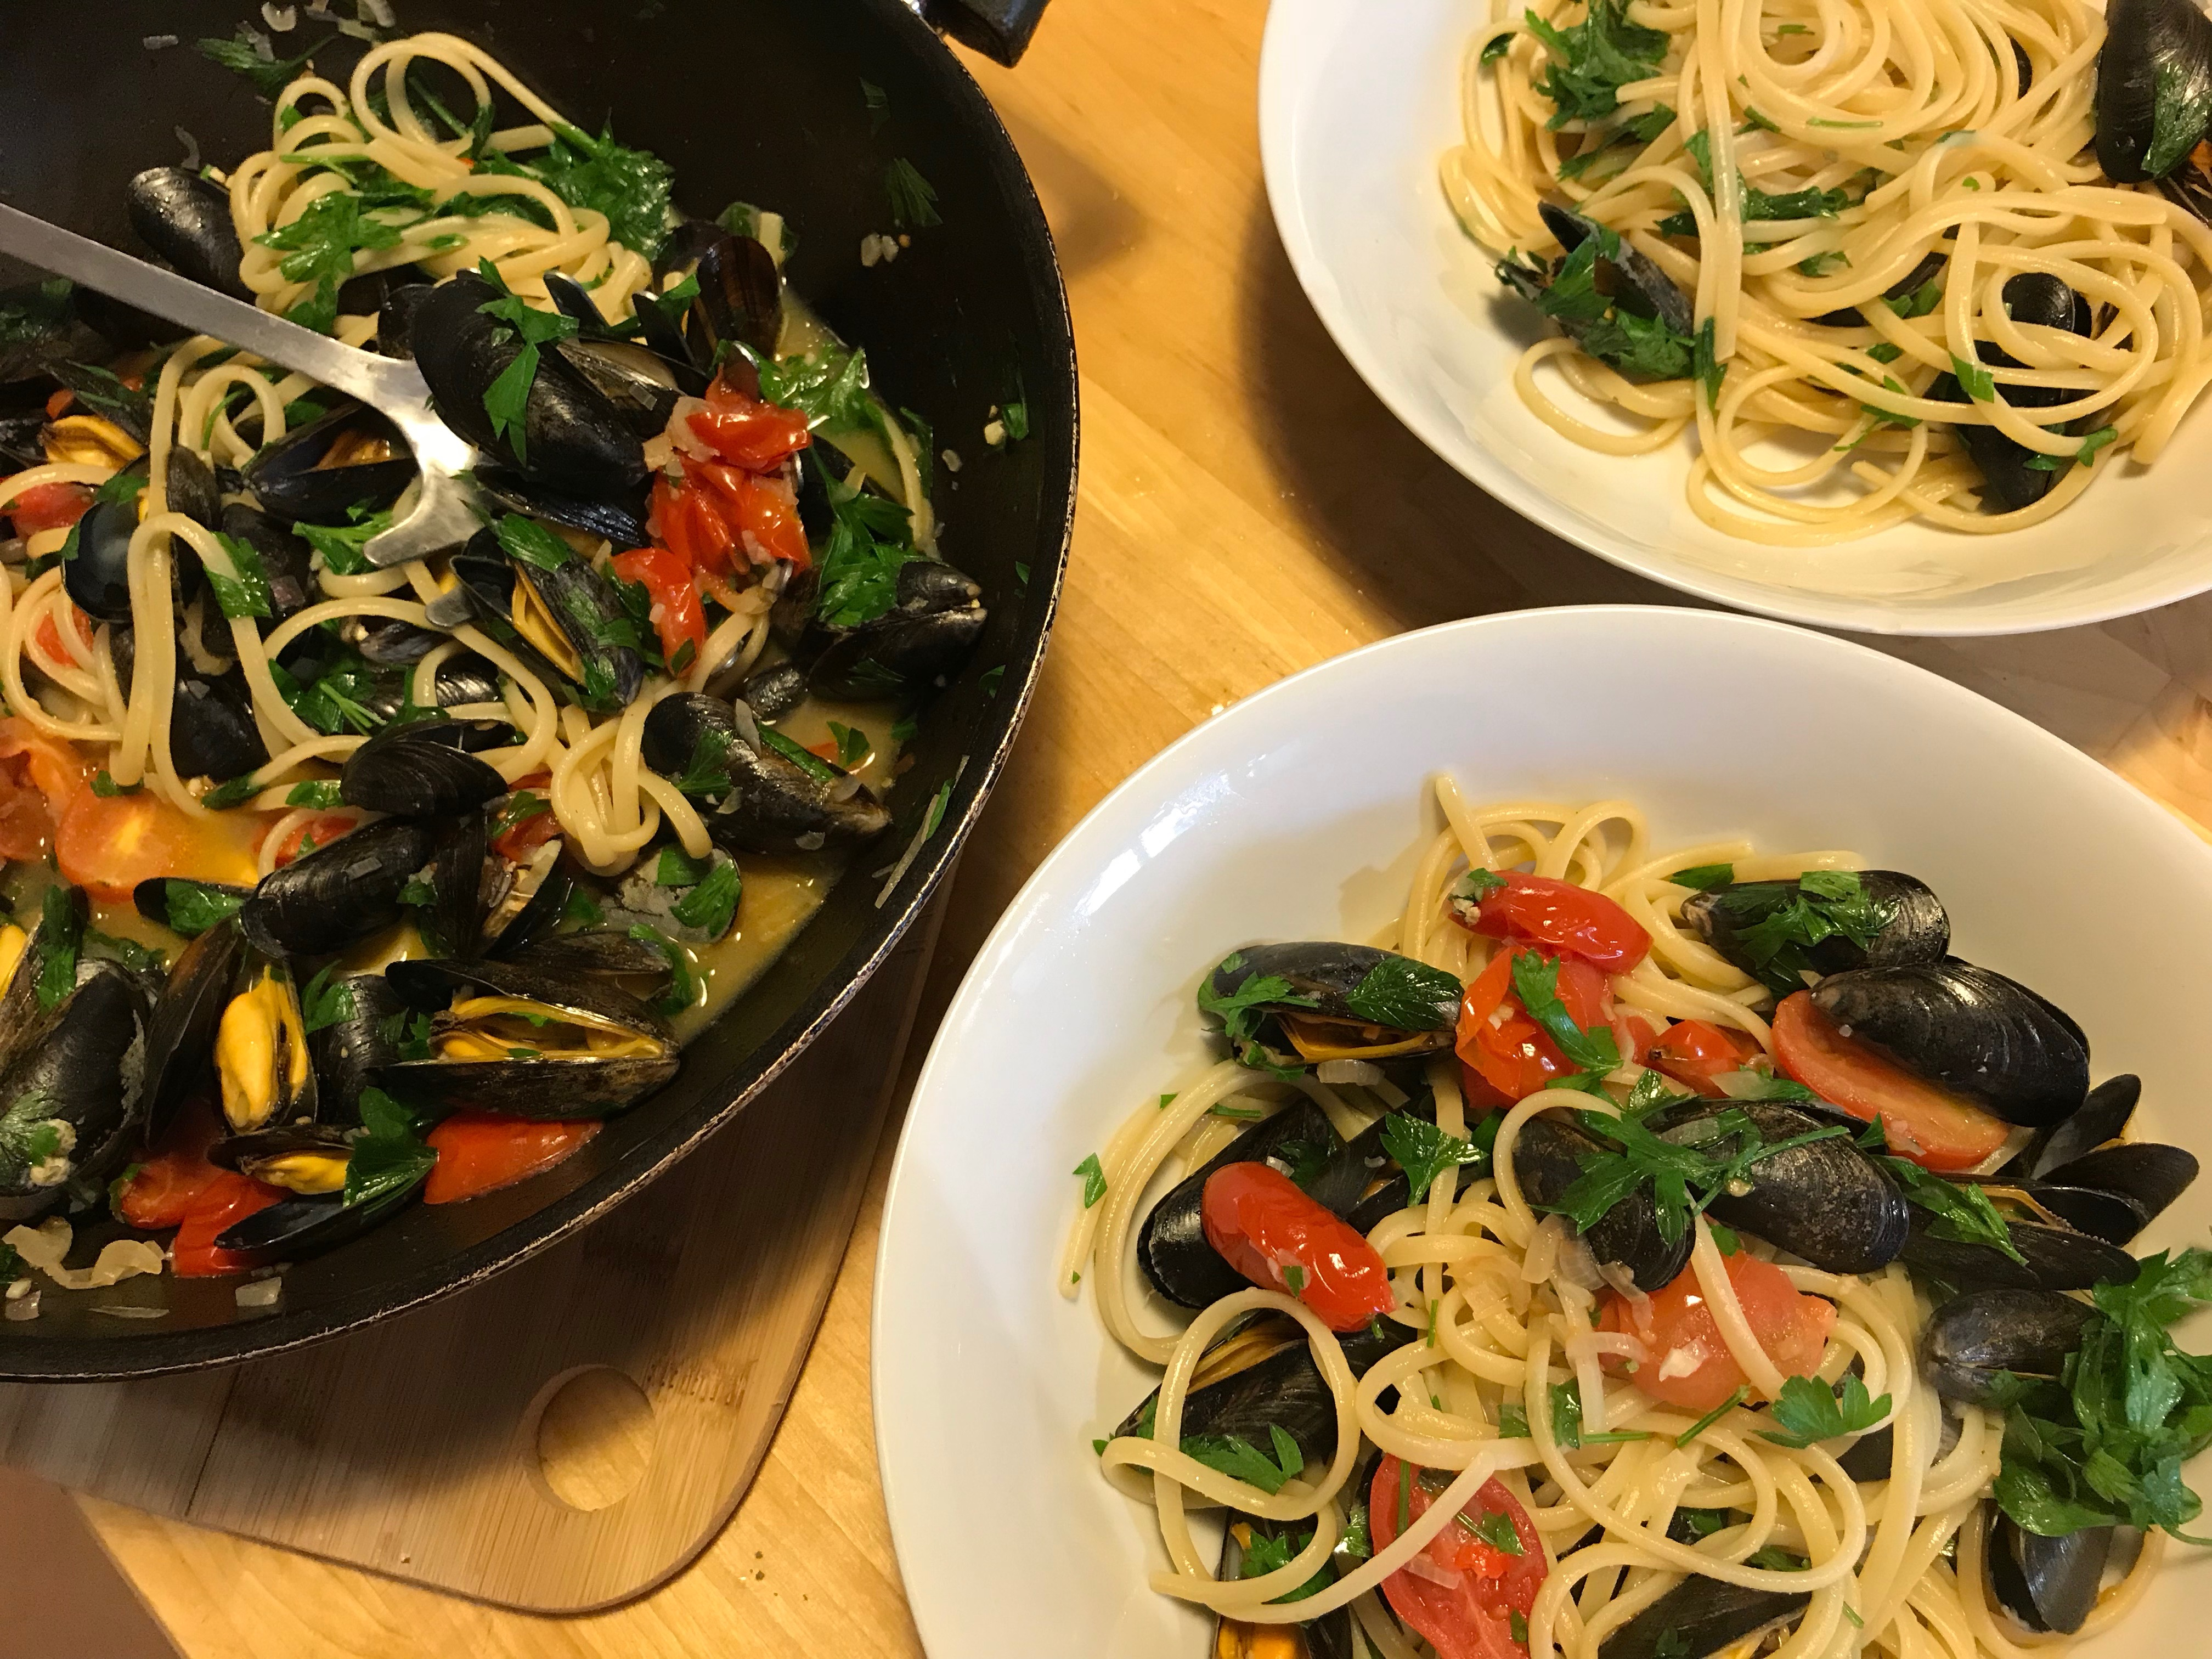 spicy mussels with spaghetti painting holidays france